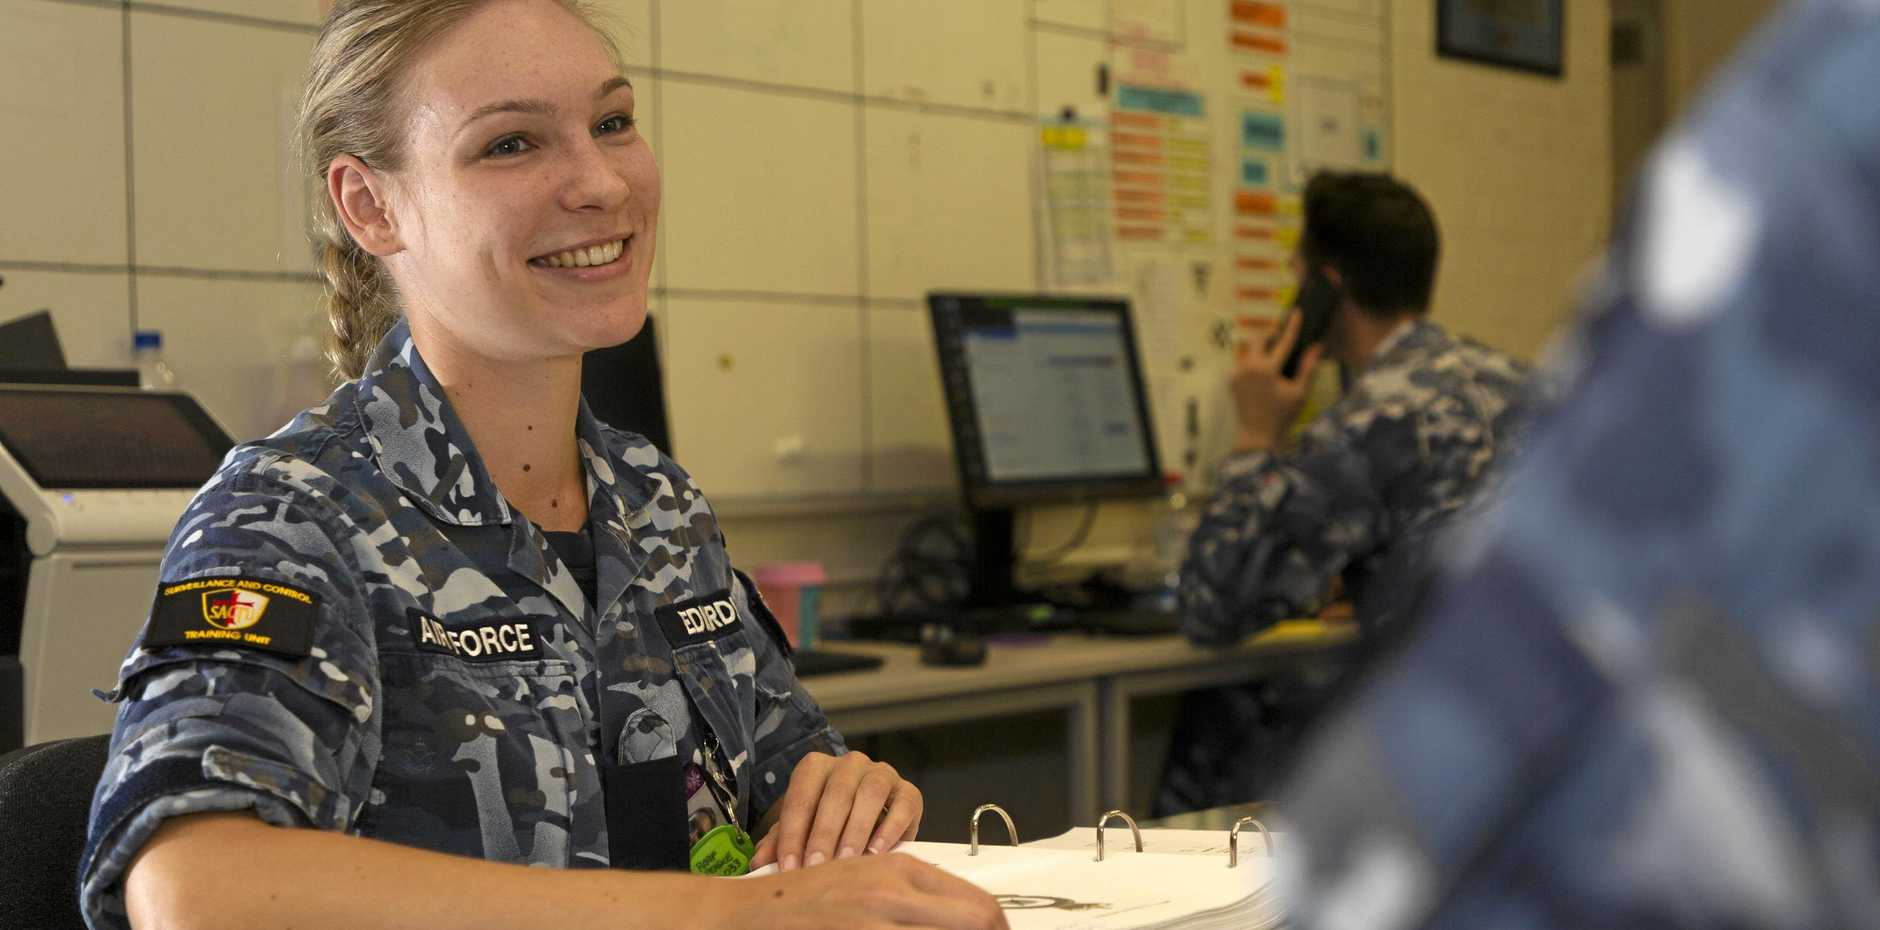 EXPERT: RAAF Flying Officer Madeline Edwards in the Task Unit Headquarters during Exercise Diamond Seas 19.